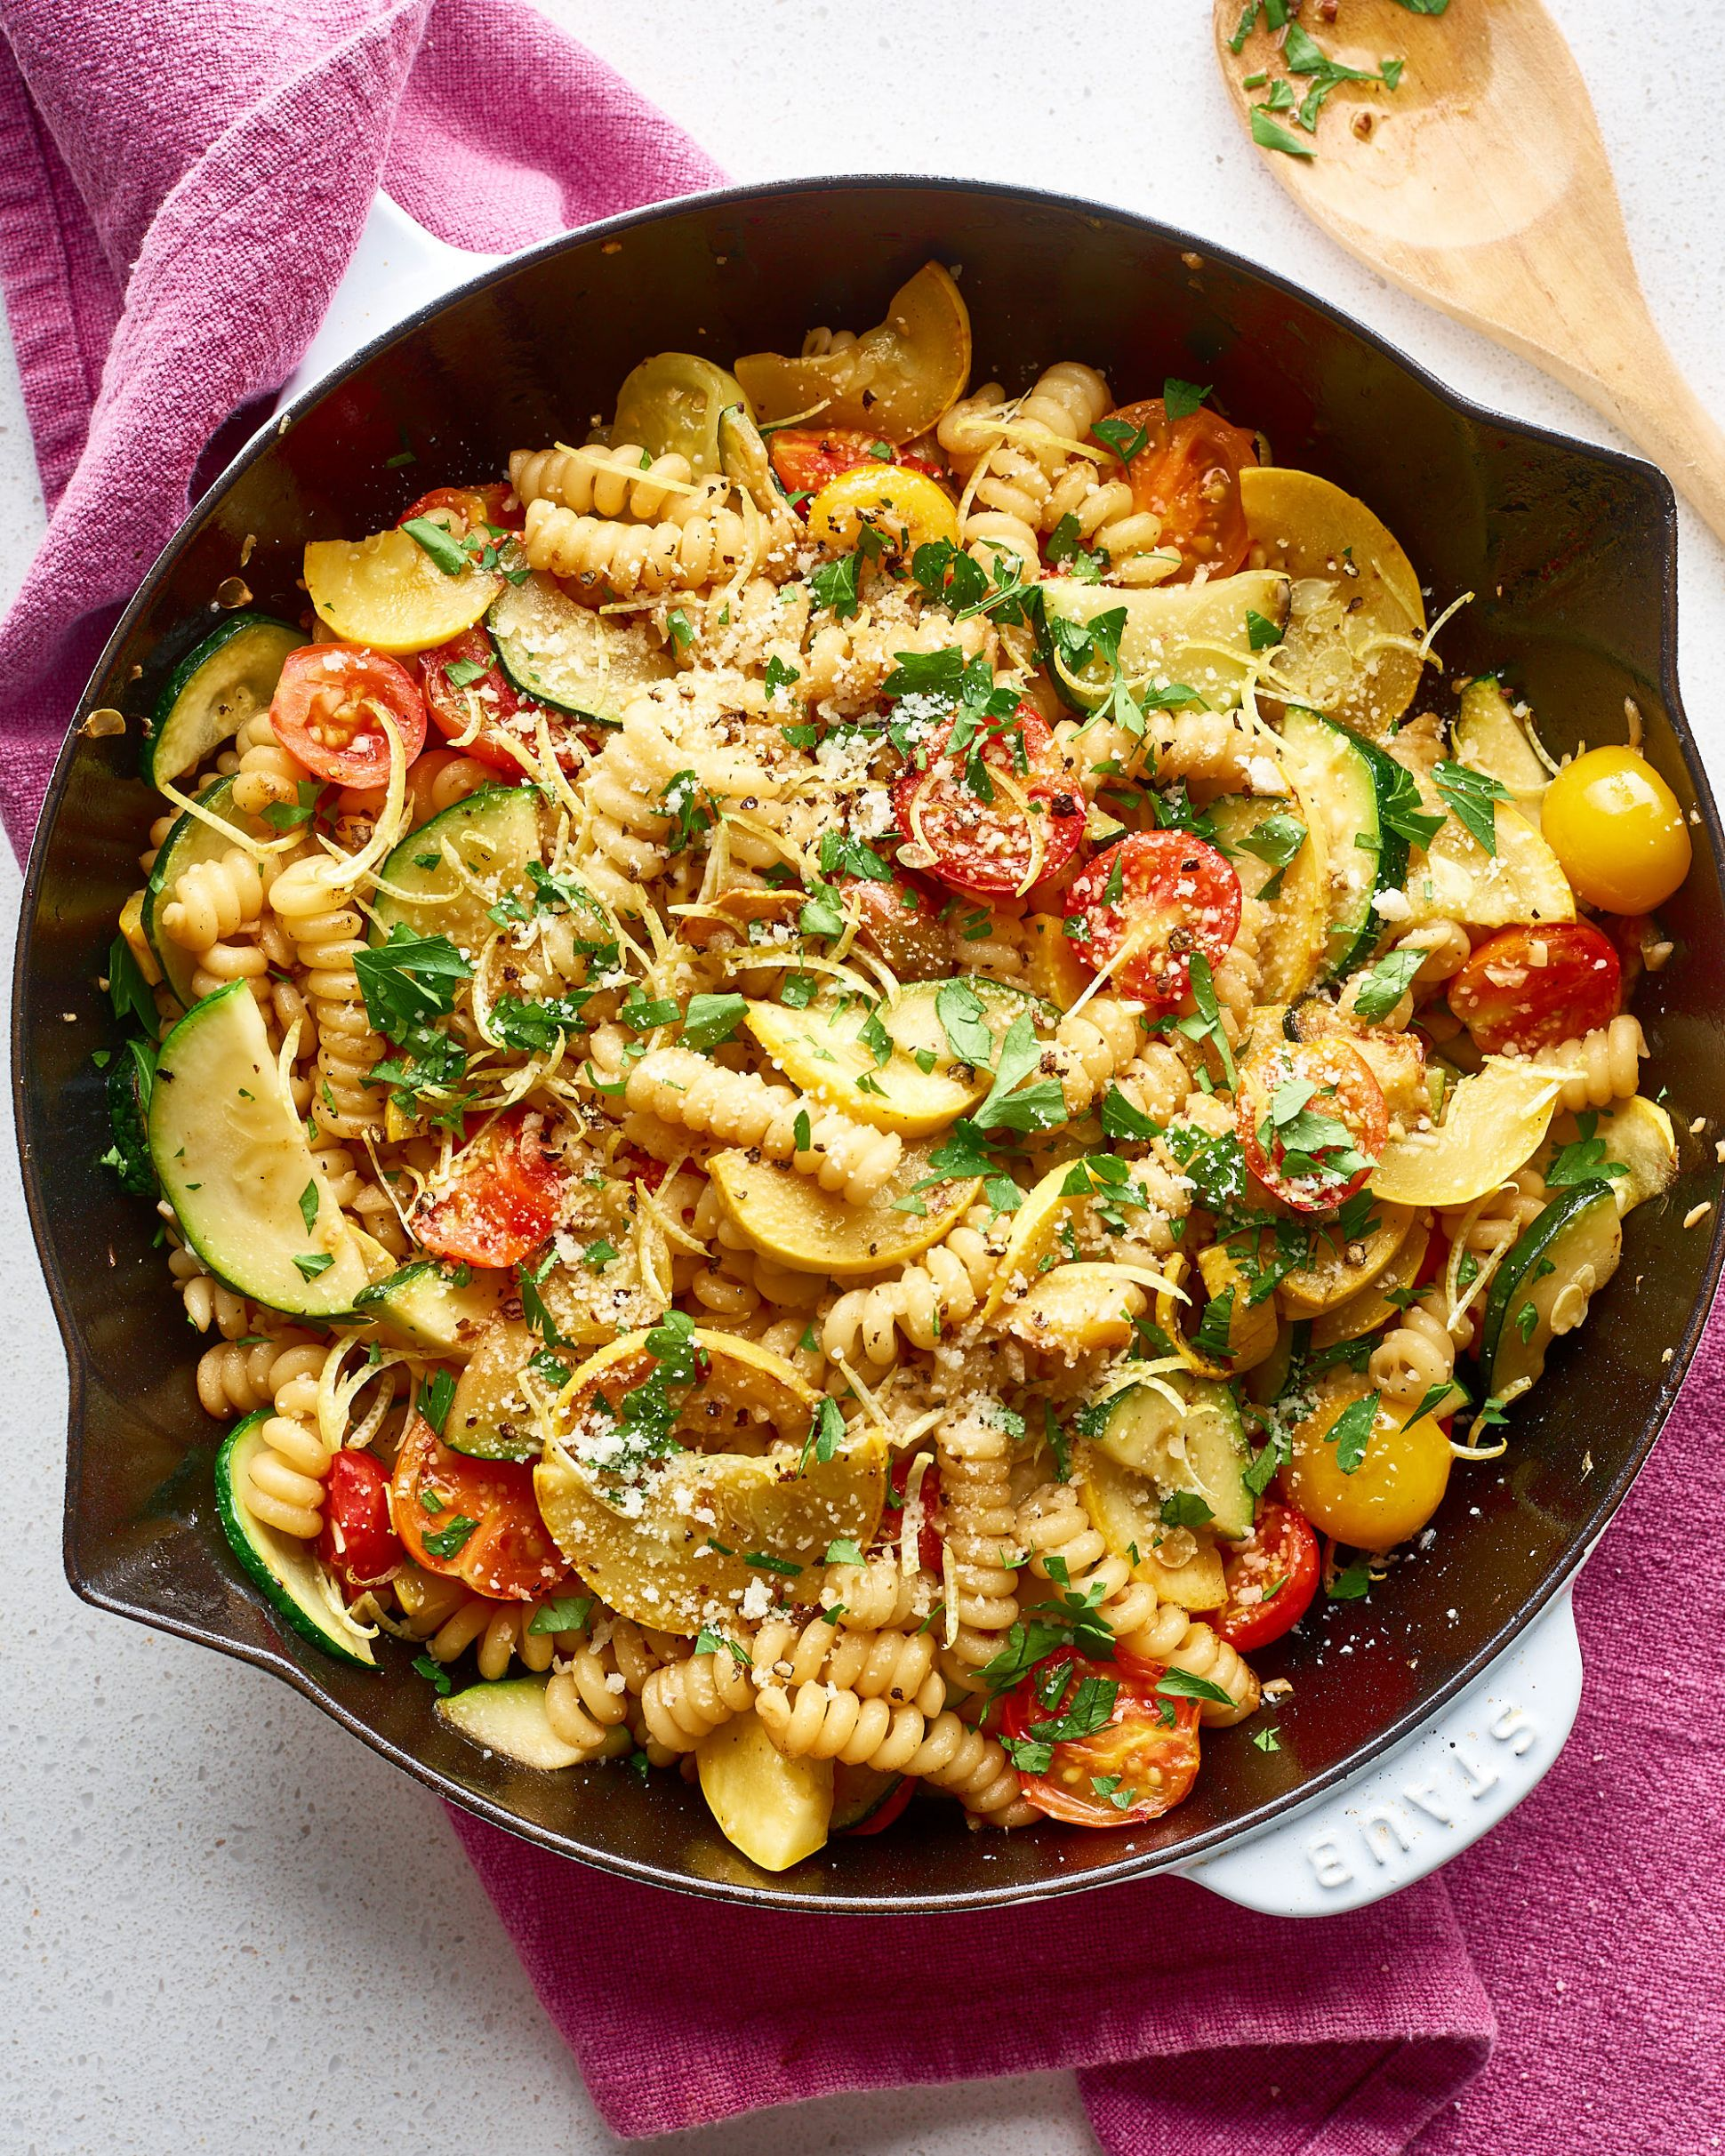 Lemon Butter Pasta & Veggies